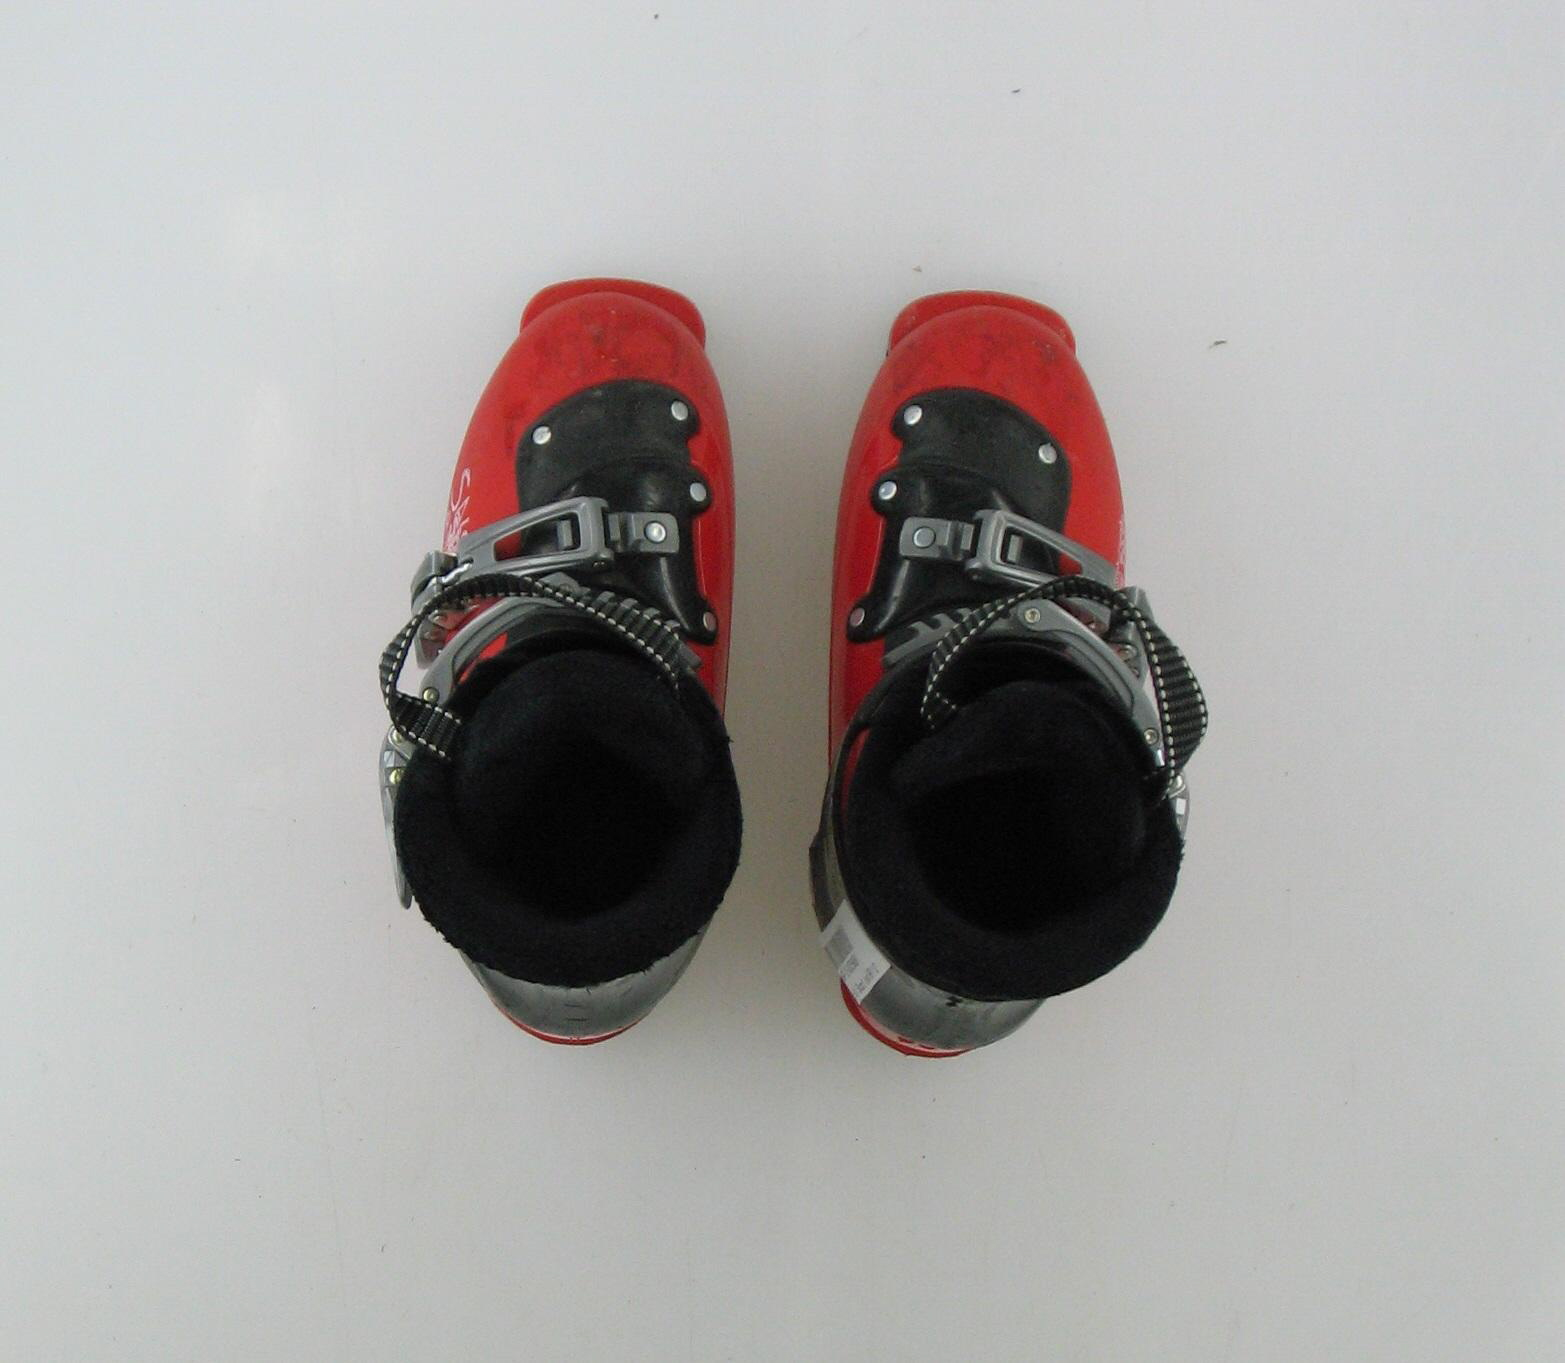 Used Salomon 2 Buckle Red And Black Ski Boots Toddler Size